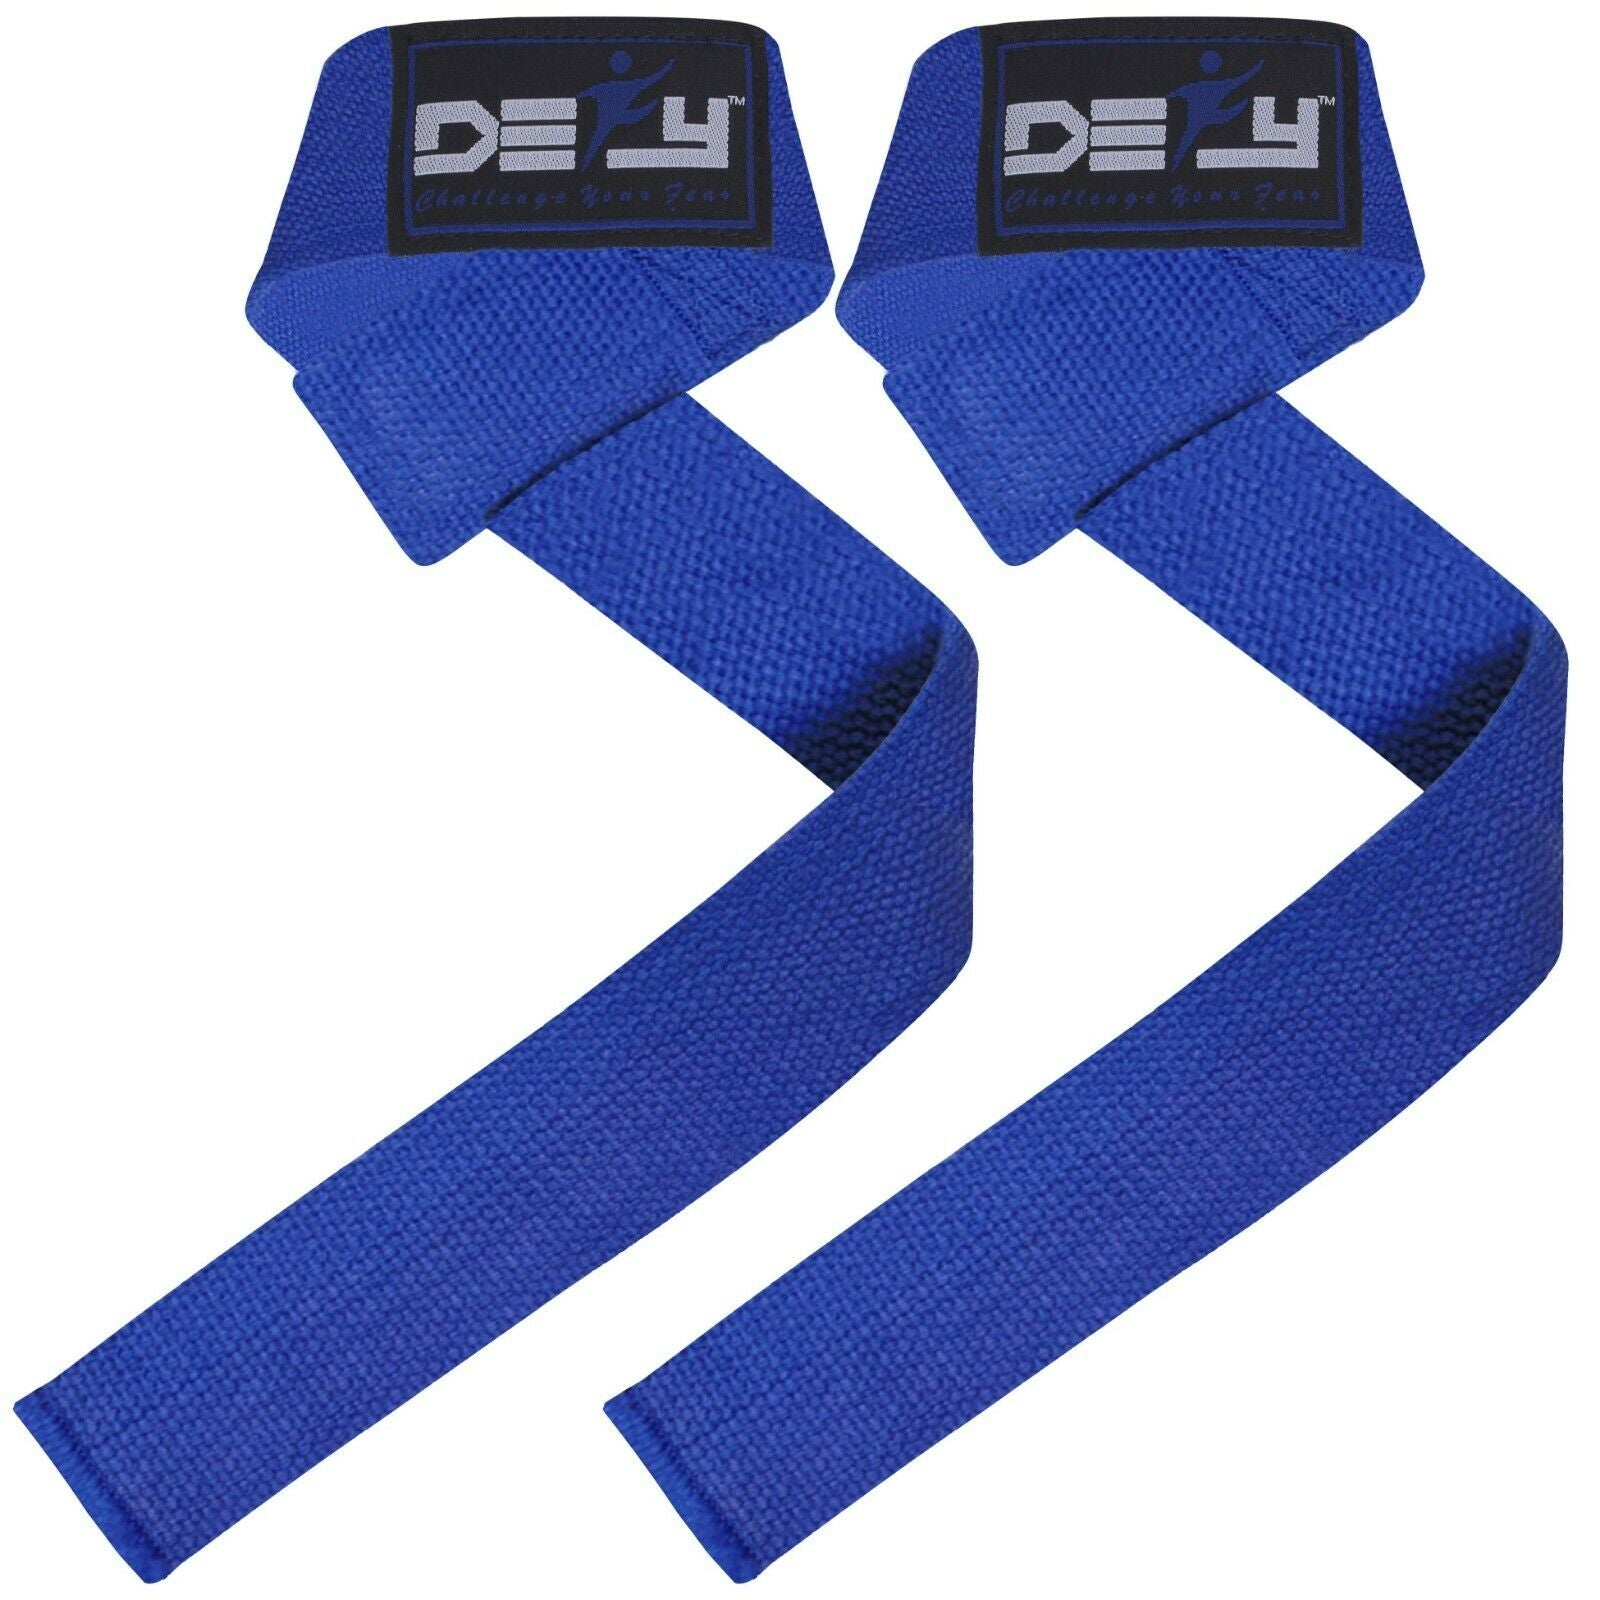 Weight Lifting Straps - Get Out Your Zone